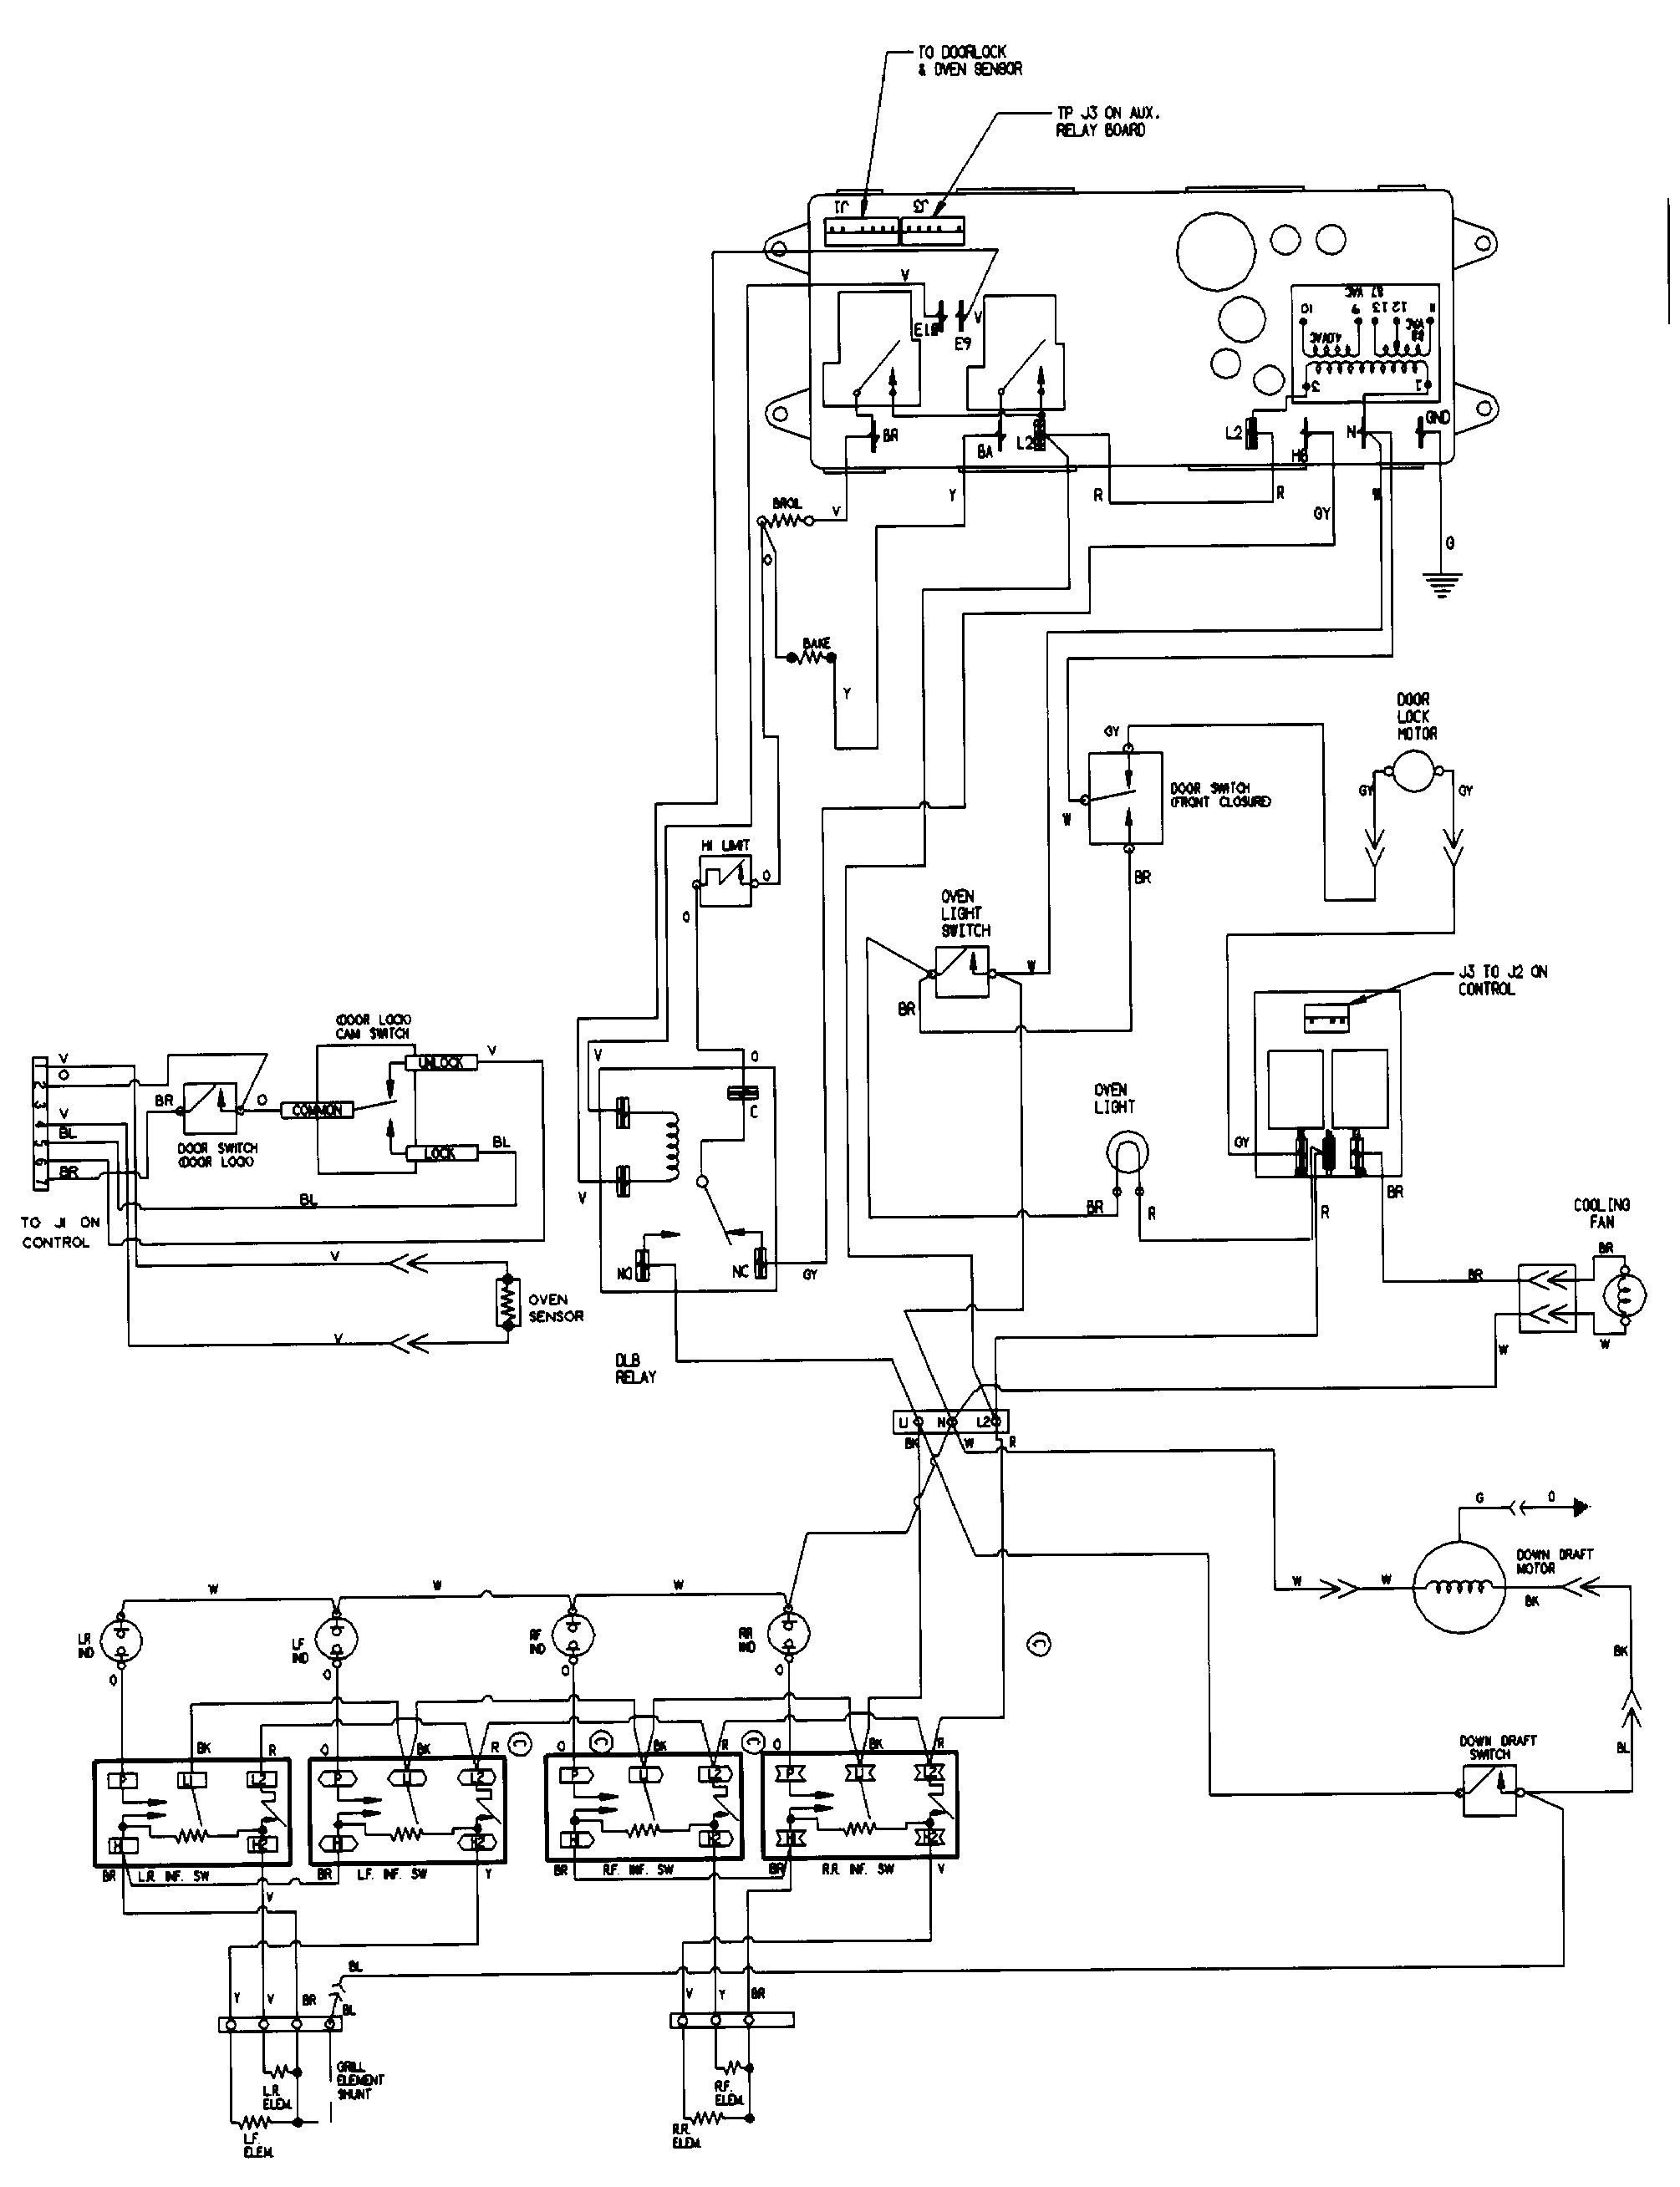 pontiac bonneville engine wiring diagram wire center u2022 rh 207 246 102  26 2001 Grand Prix 4 Door 2001 Grand Prix 4 Door